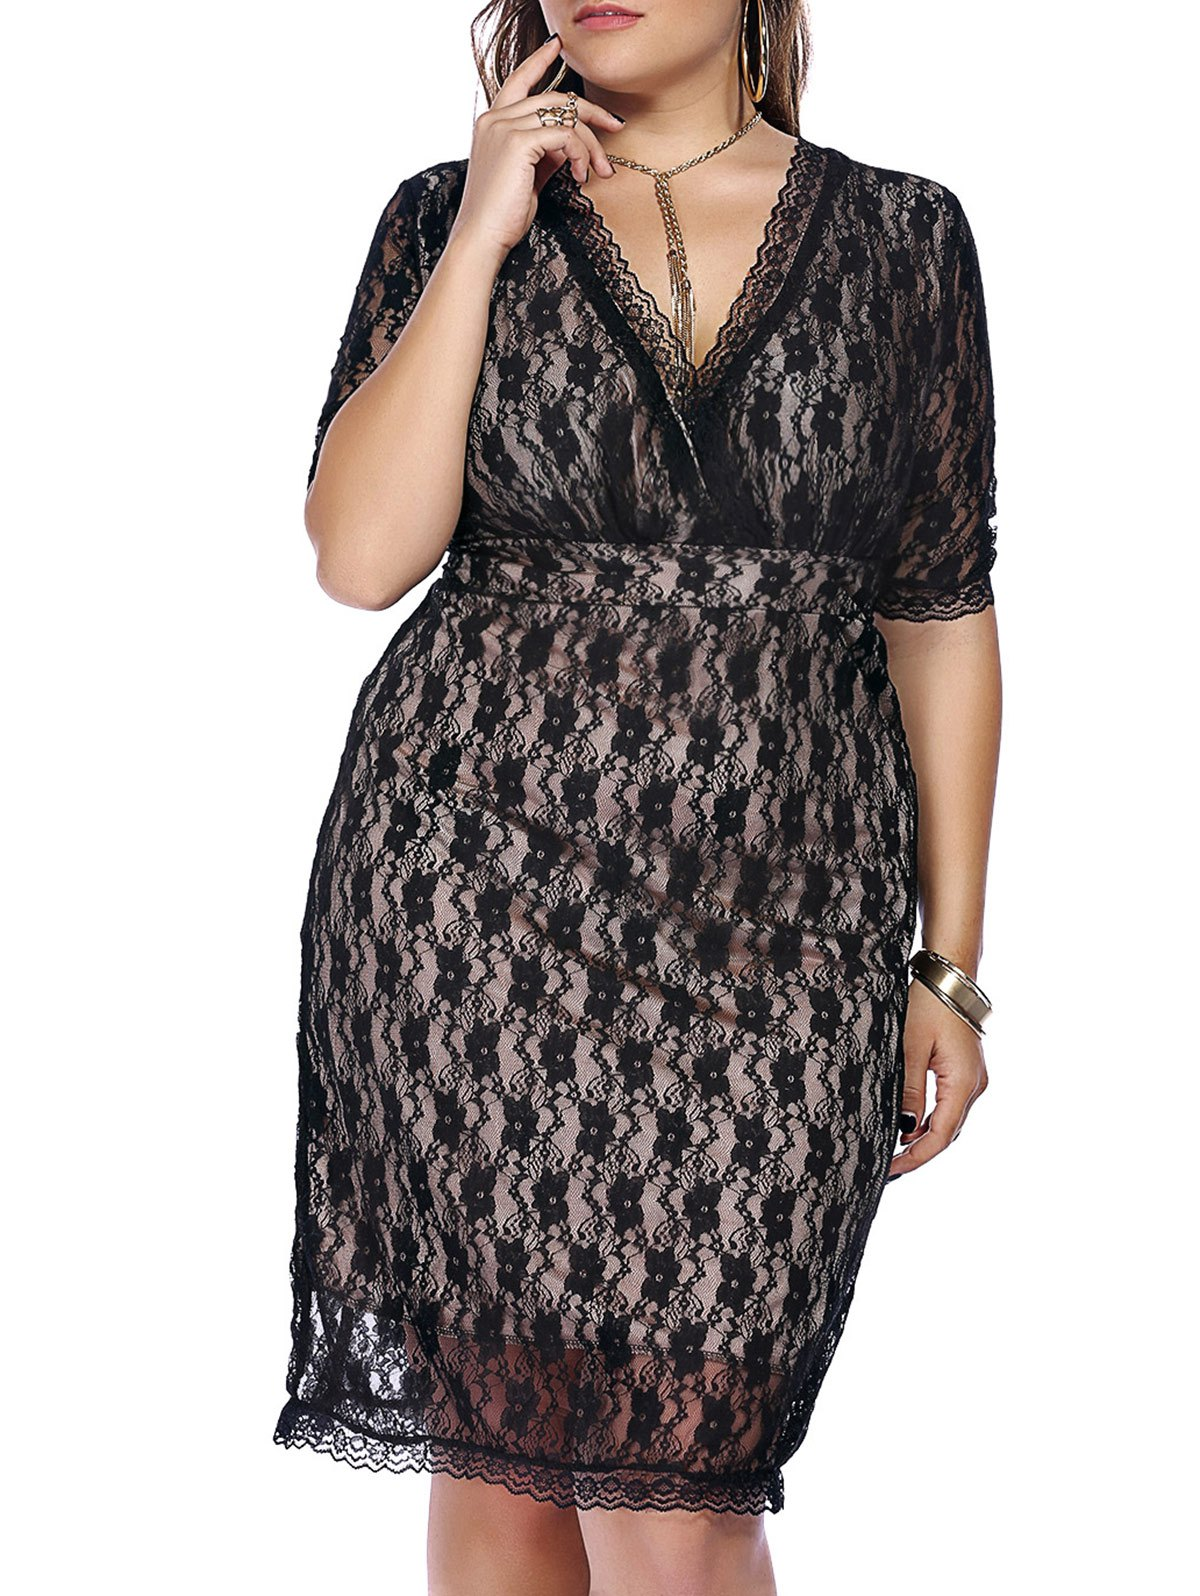 Graceful Women's Plus Size Plunging Neck Half Sleeve Lace Dress - BLACK 3XL